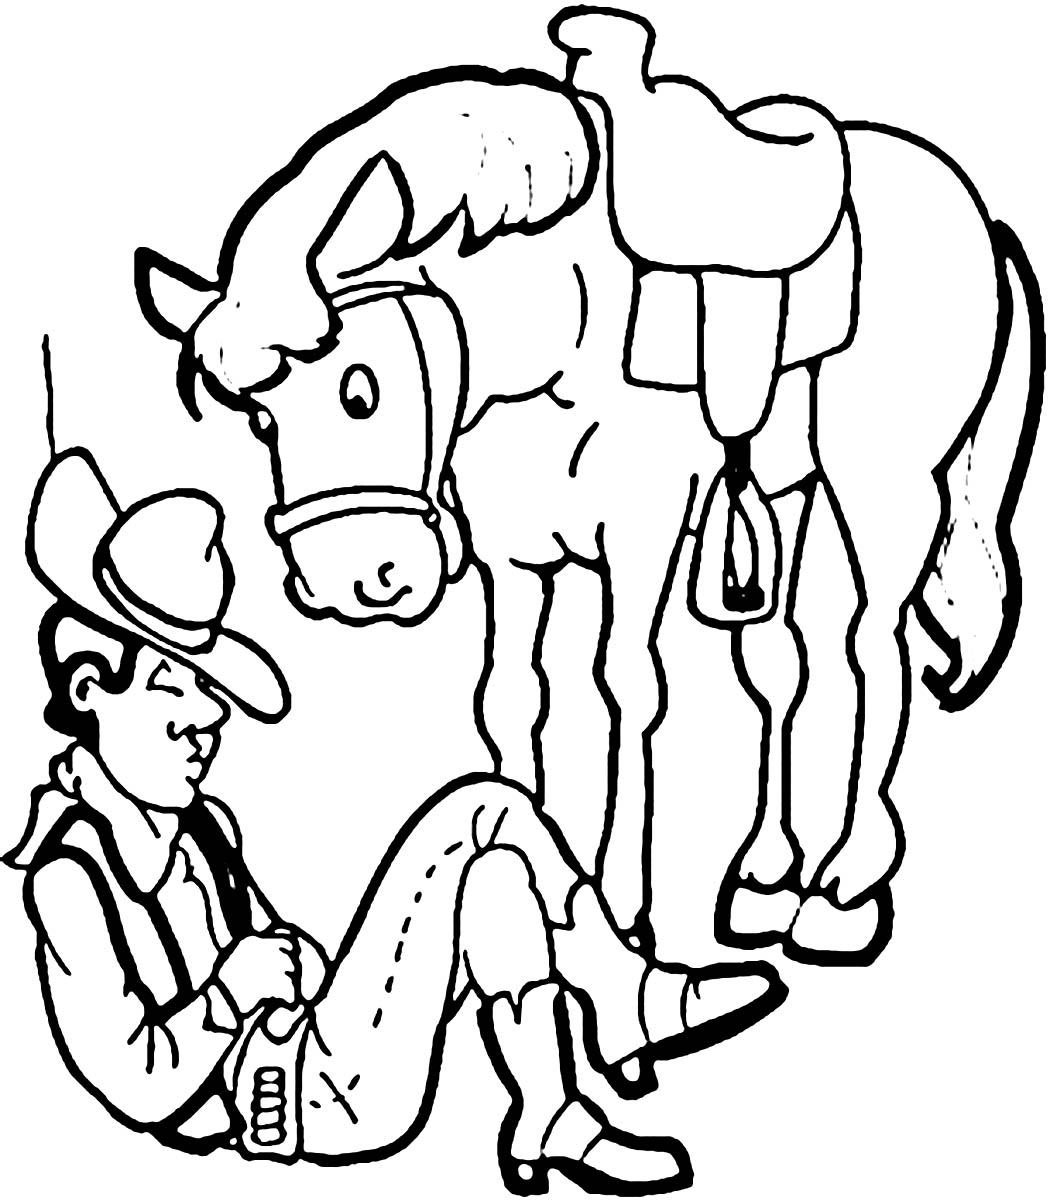 free printable coloring pages cowboys - photo#18